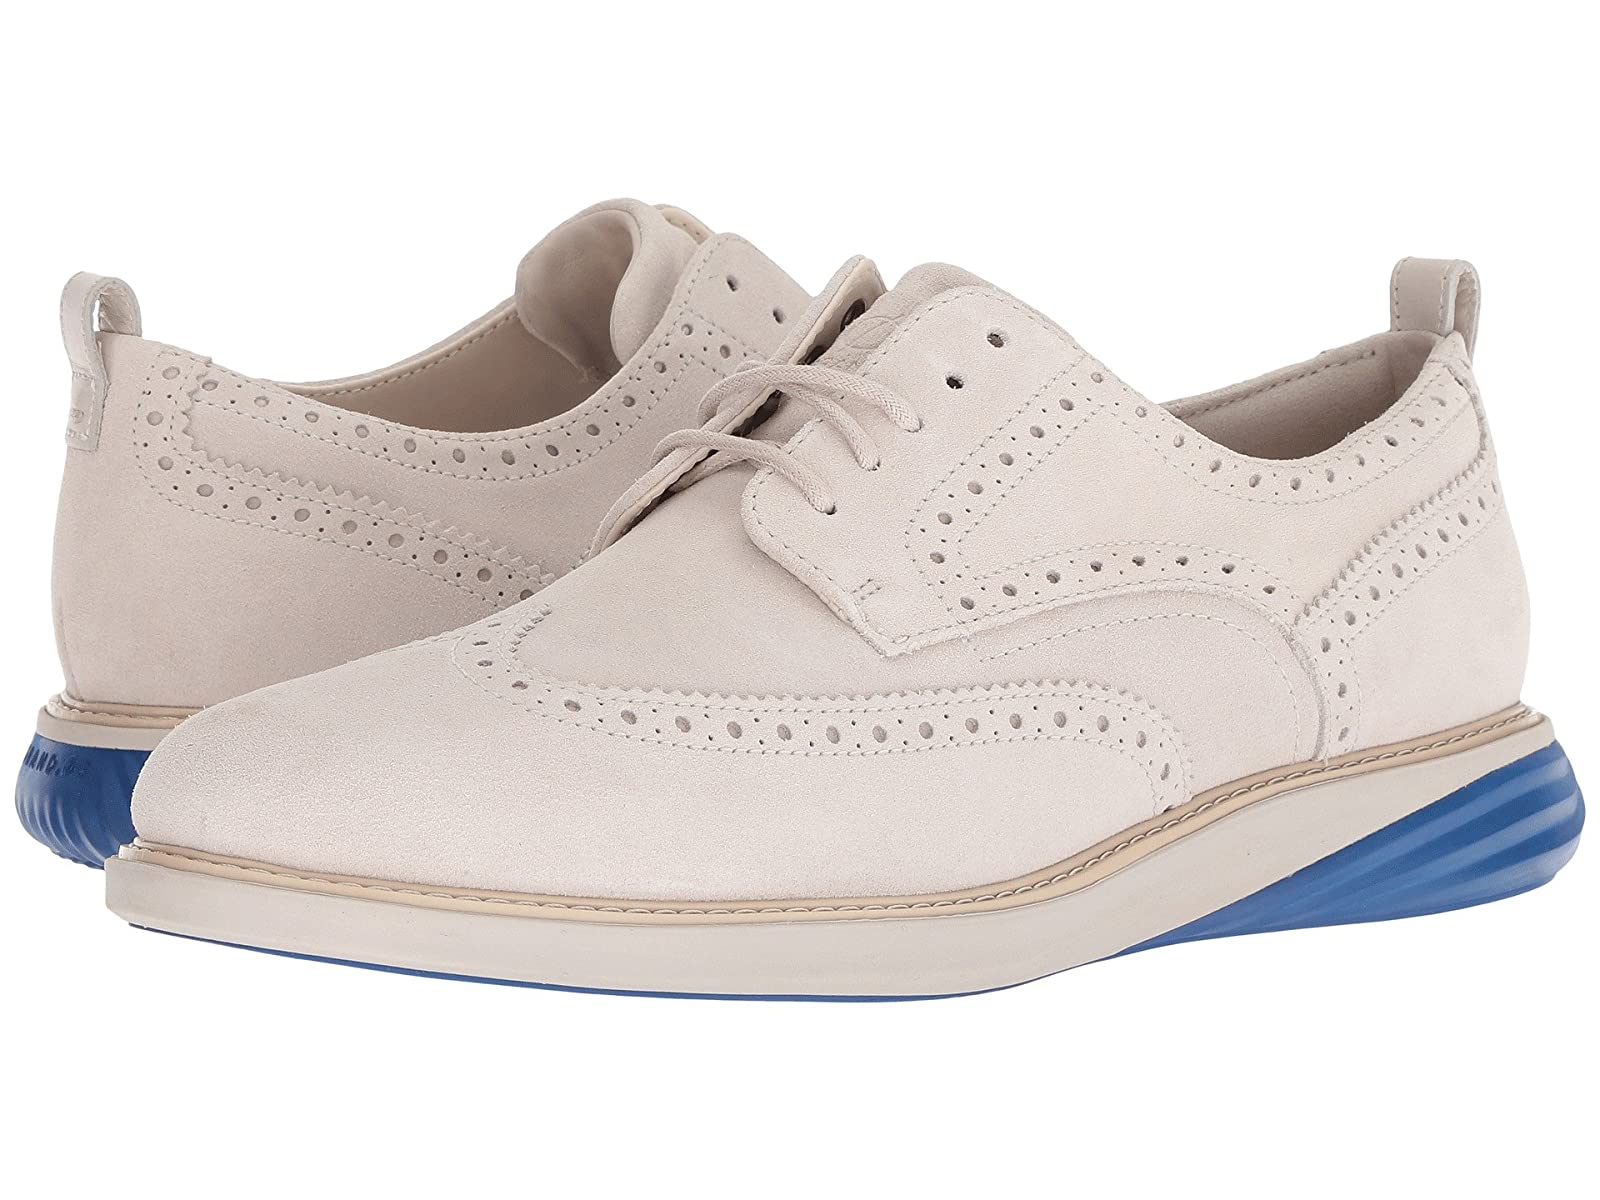 Cole Haan Grand Evolution ShortwingCheap and distinctive eye-catching shoes